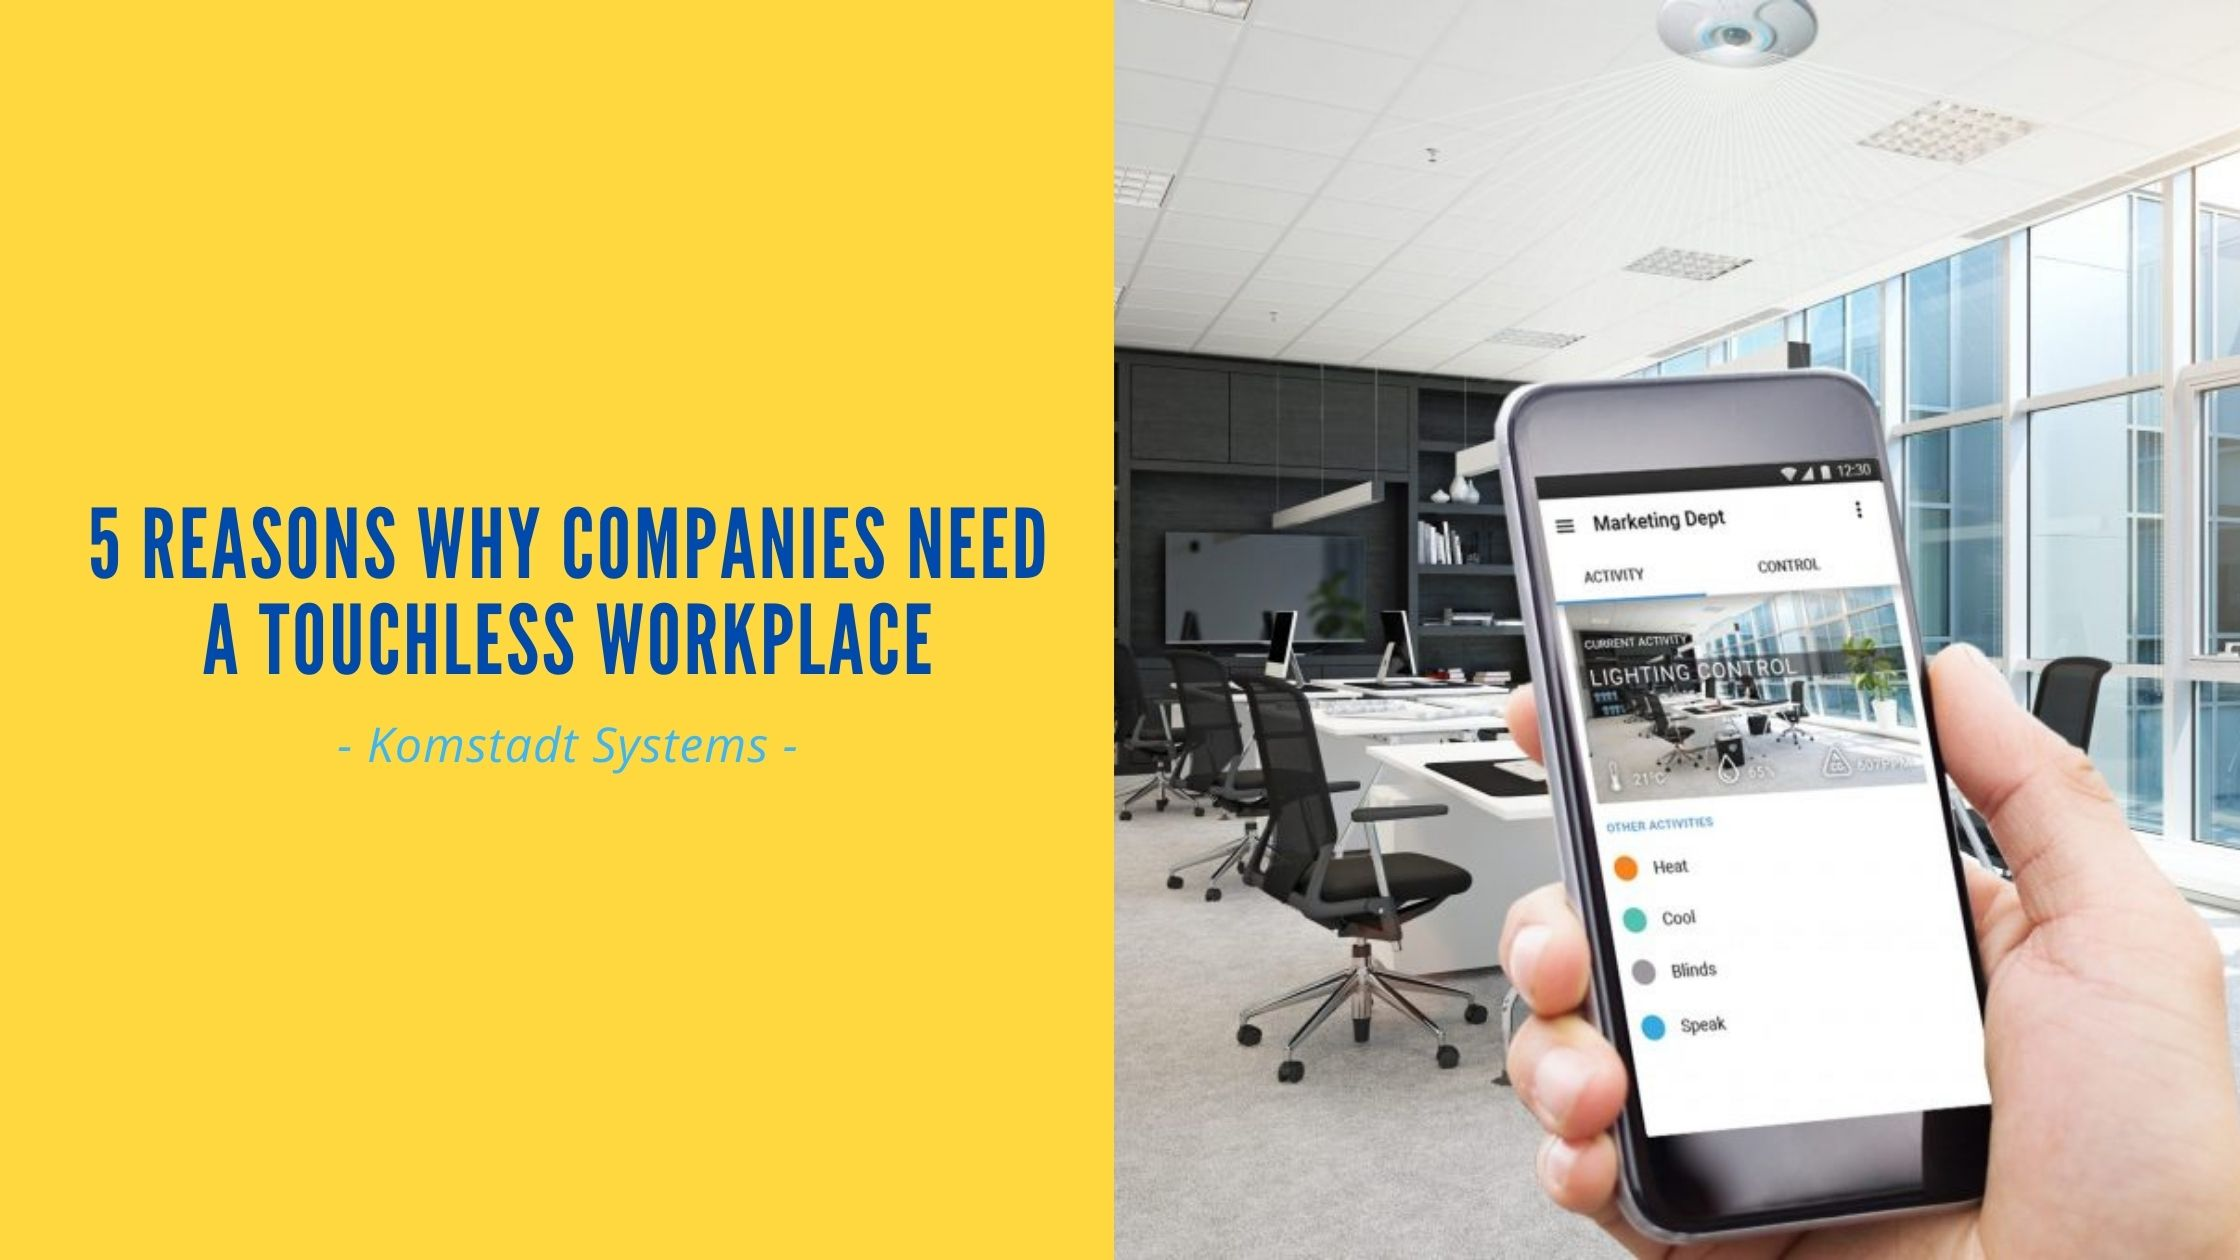 5 Reasons why Companies Need a Touchless Workplace